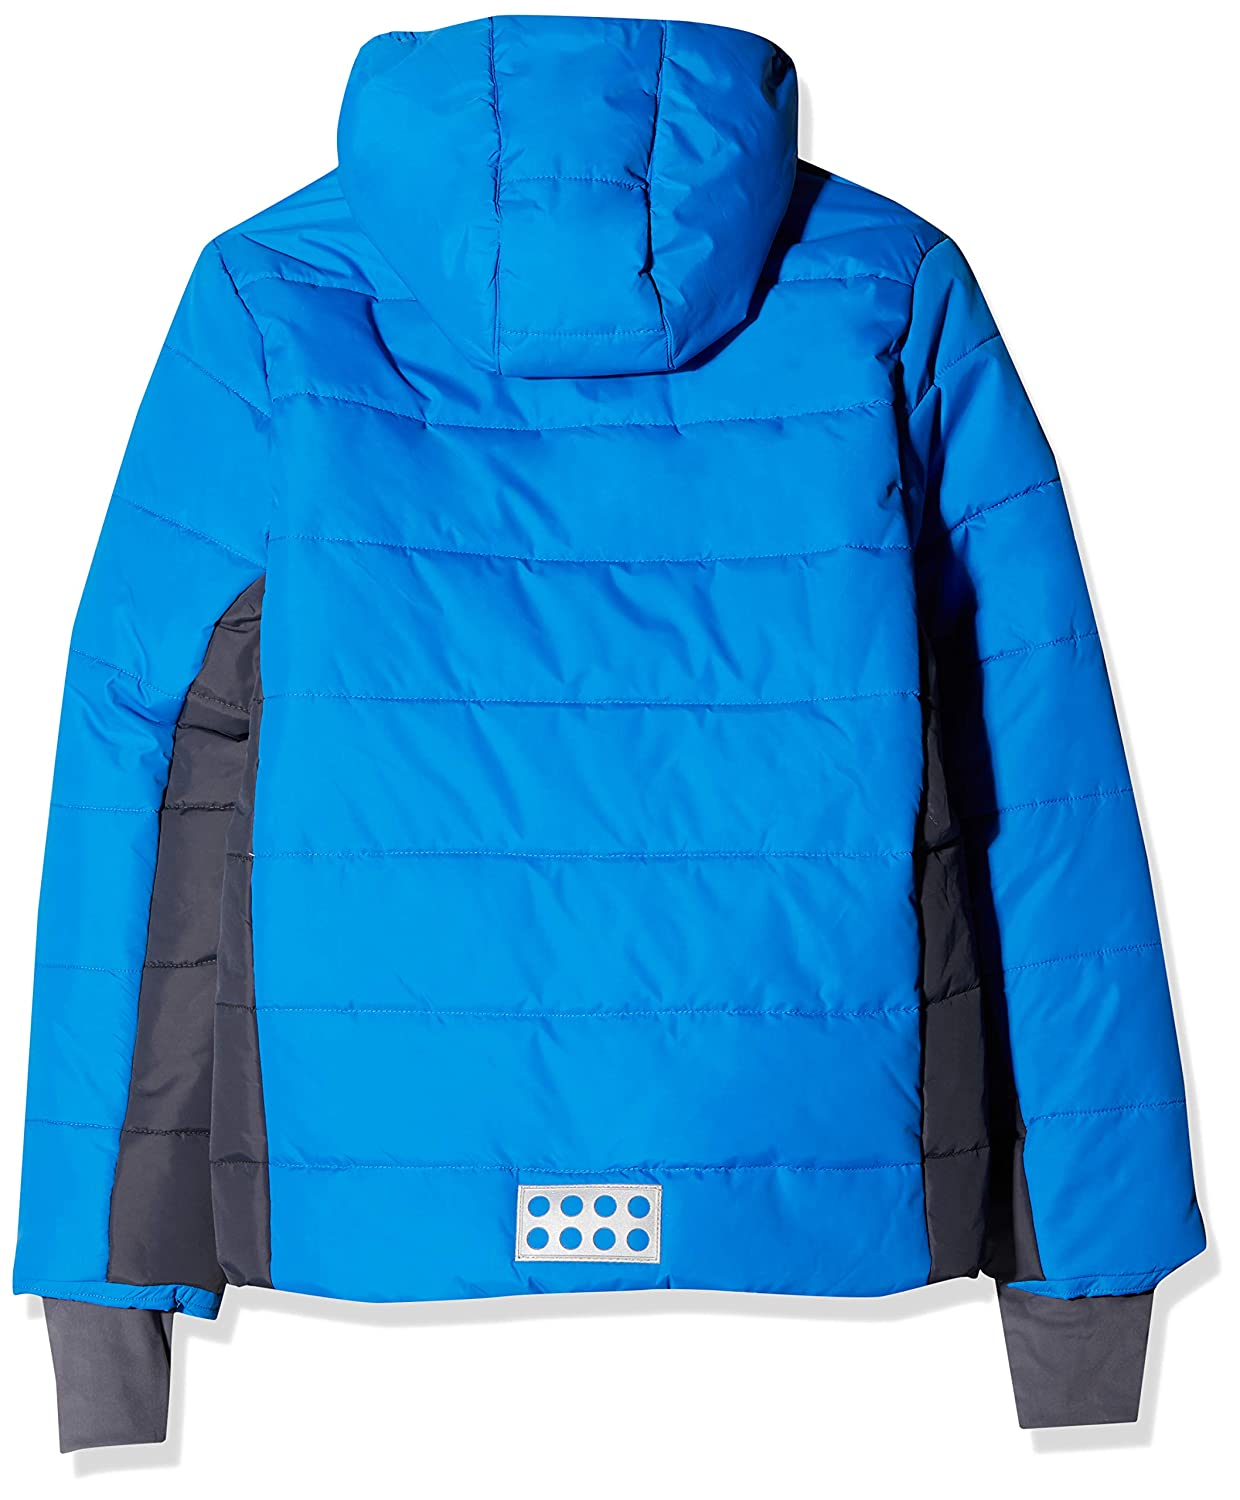 LEGO Wear Kids /& Baby Waterproof /& Windproof Snow// Ski Jacket with with Chin Guard Protector and Reflective Detail